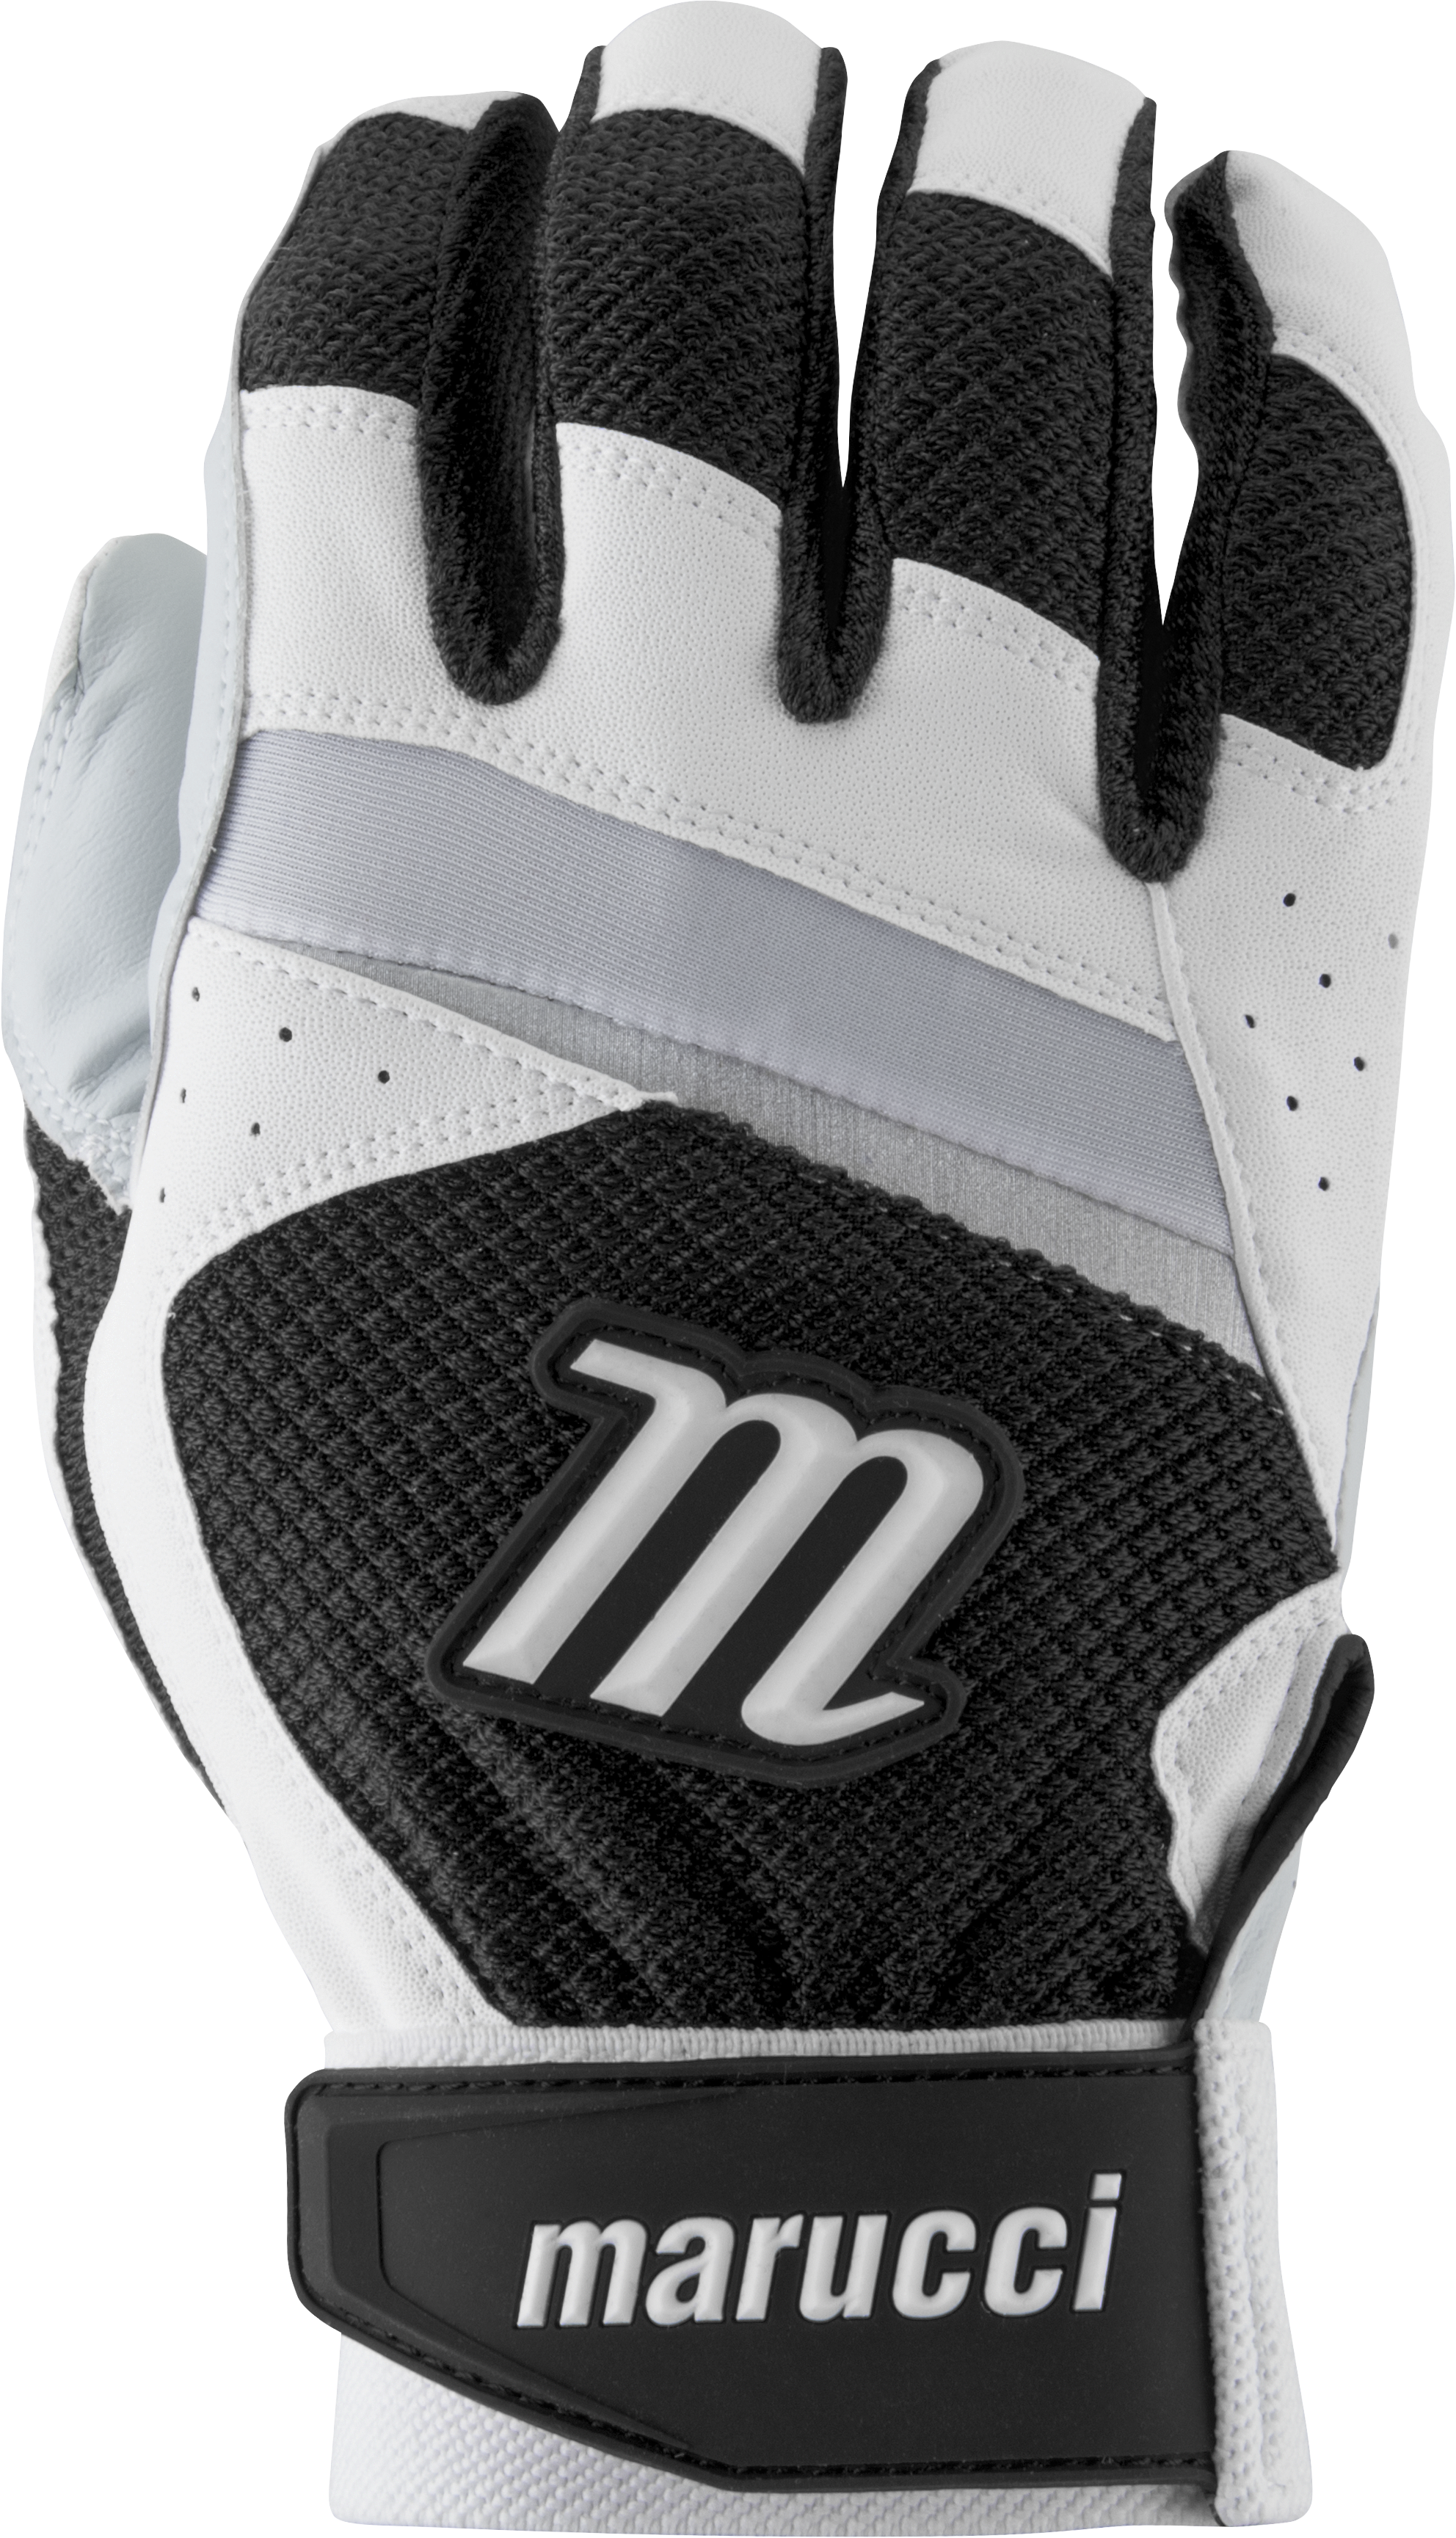 marucci-code-adult-batting-gloves-1-pair-white-black-adult-large MBGCD-WBK-AL  849817095966 2019 Model MBGCD-W/BK Consistency And Craftsmanship Commitment To Quality And Understanding